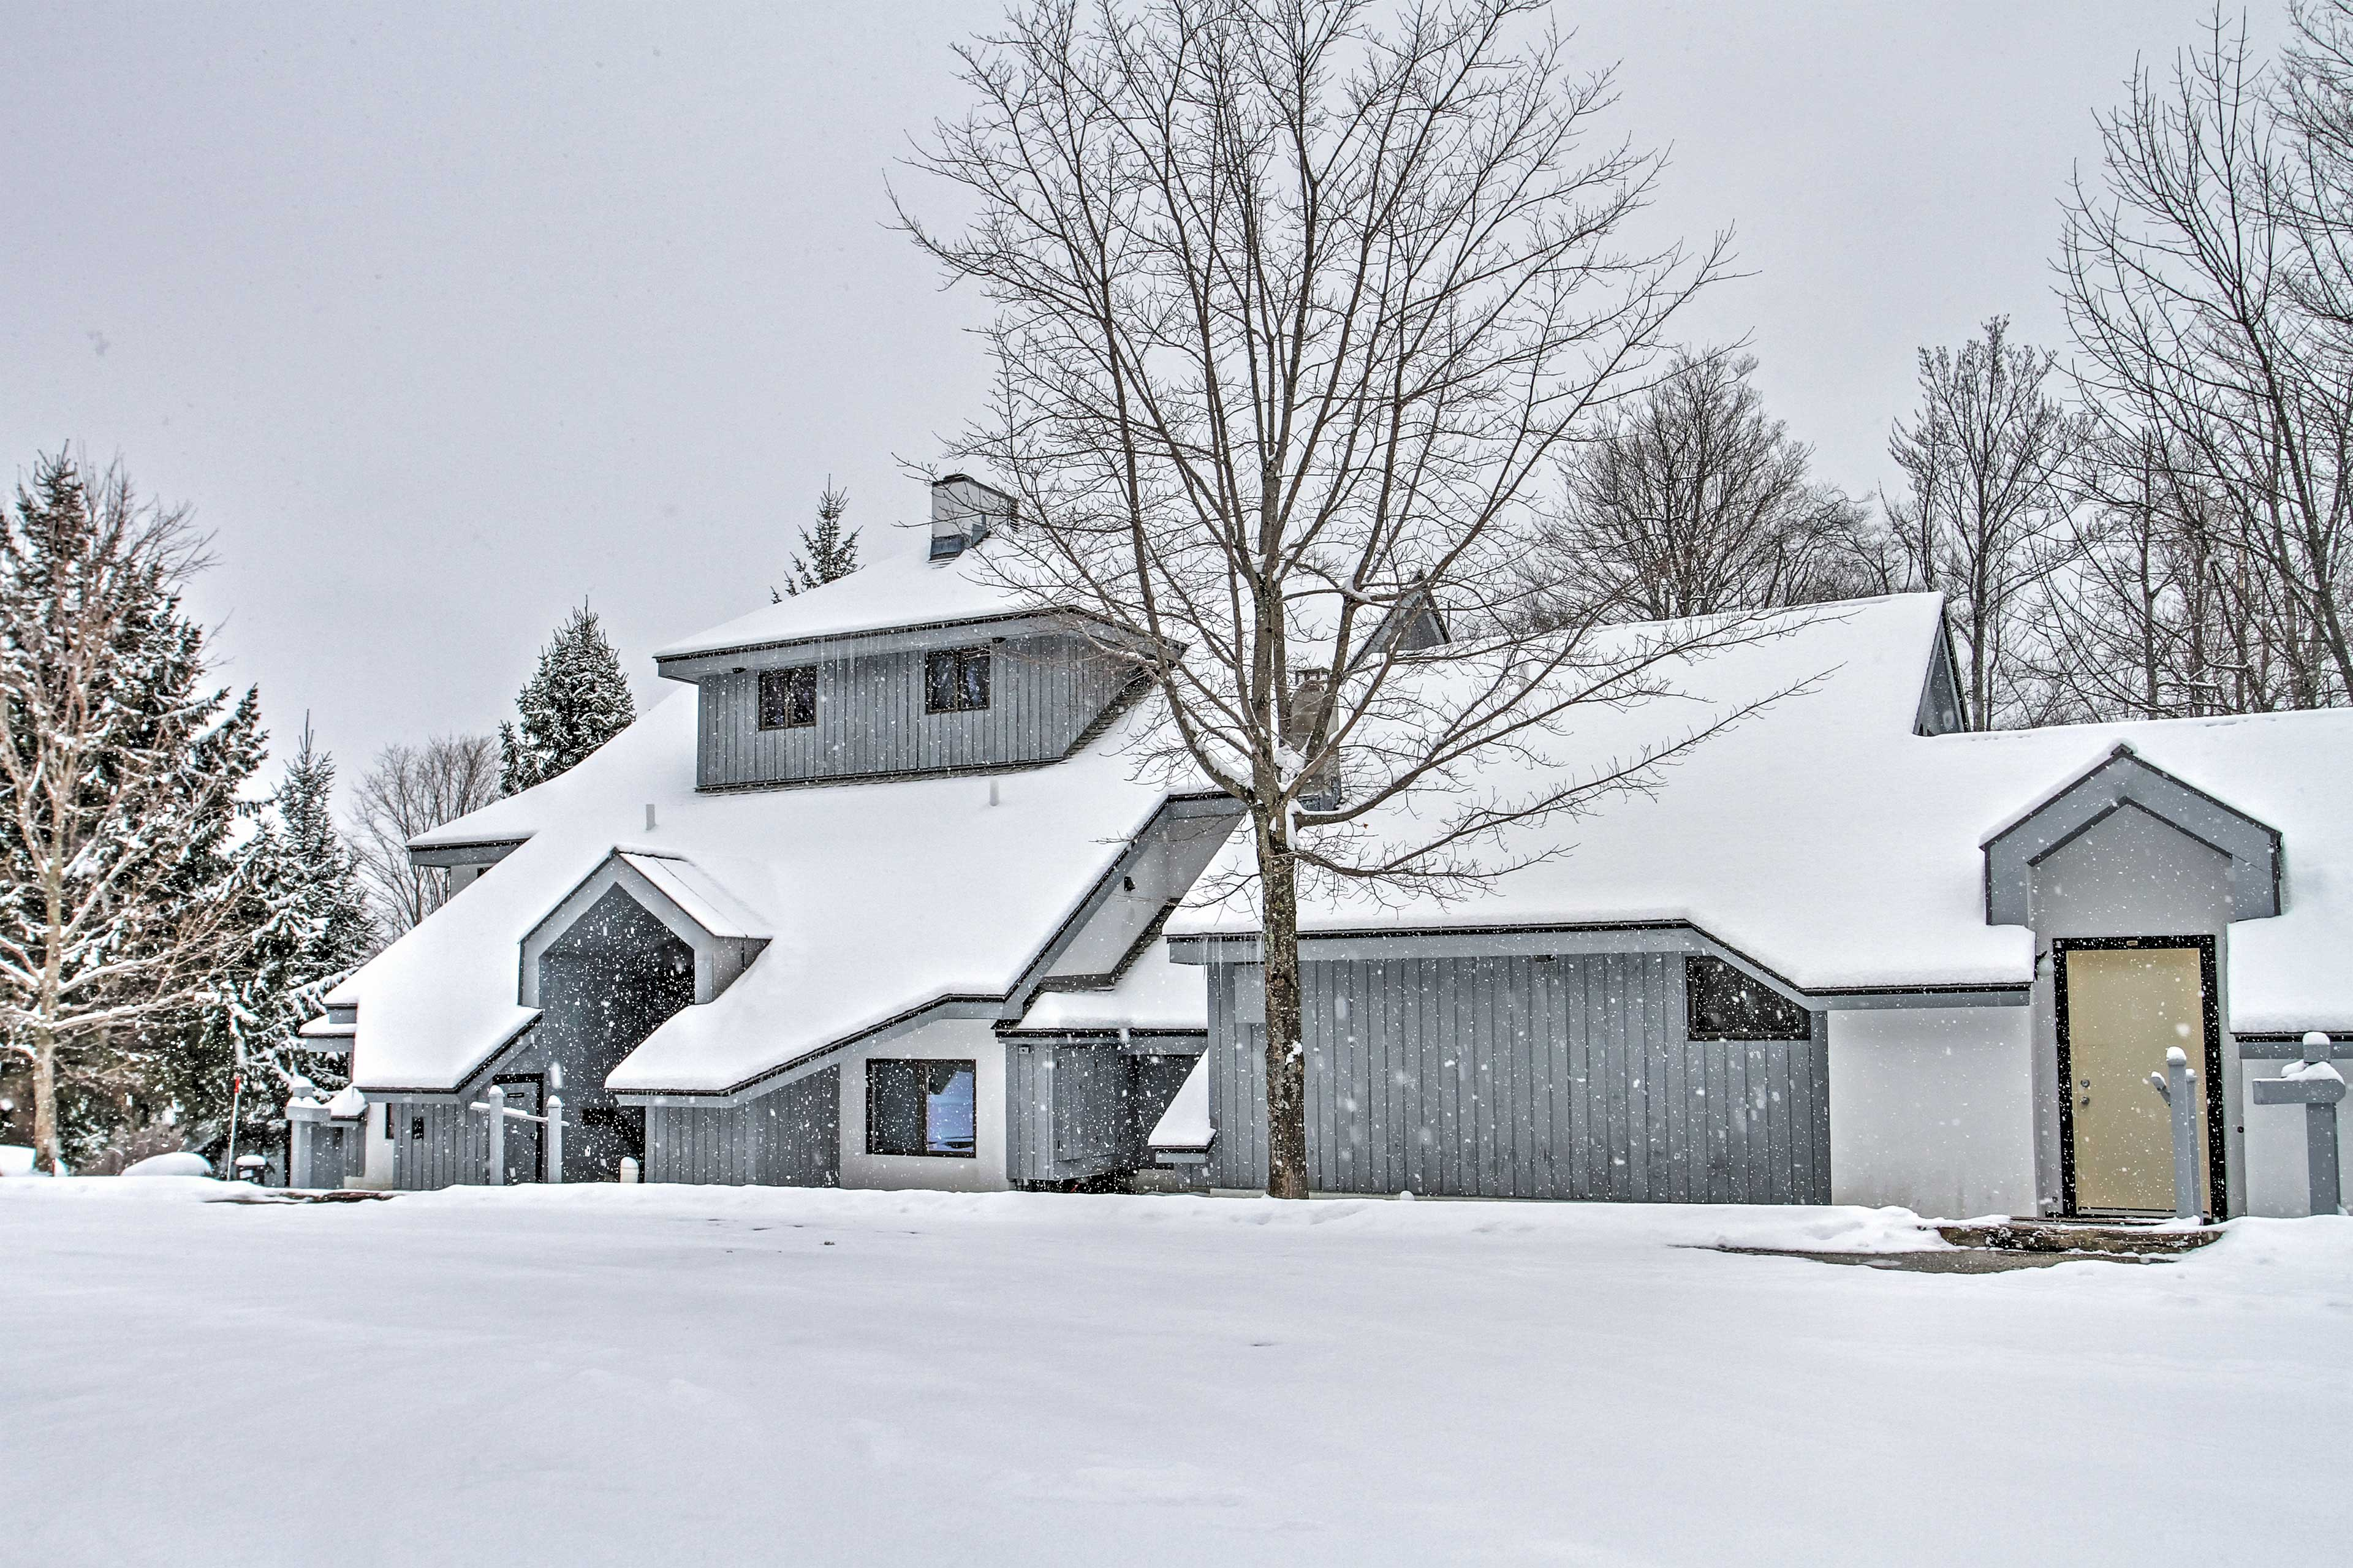 This property turns into a winter wonderland as the snow starts to fall!